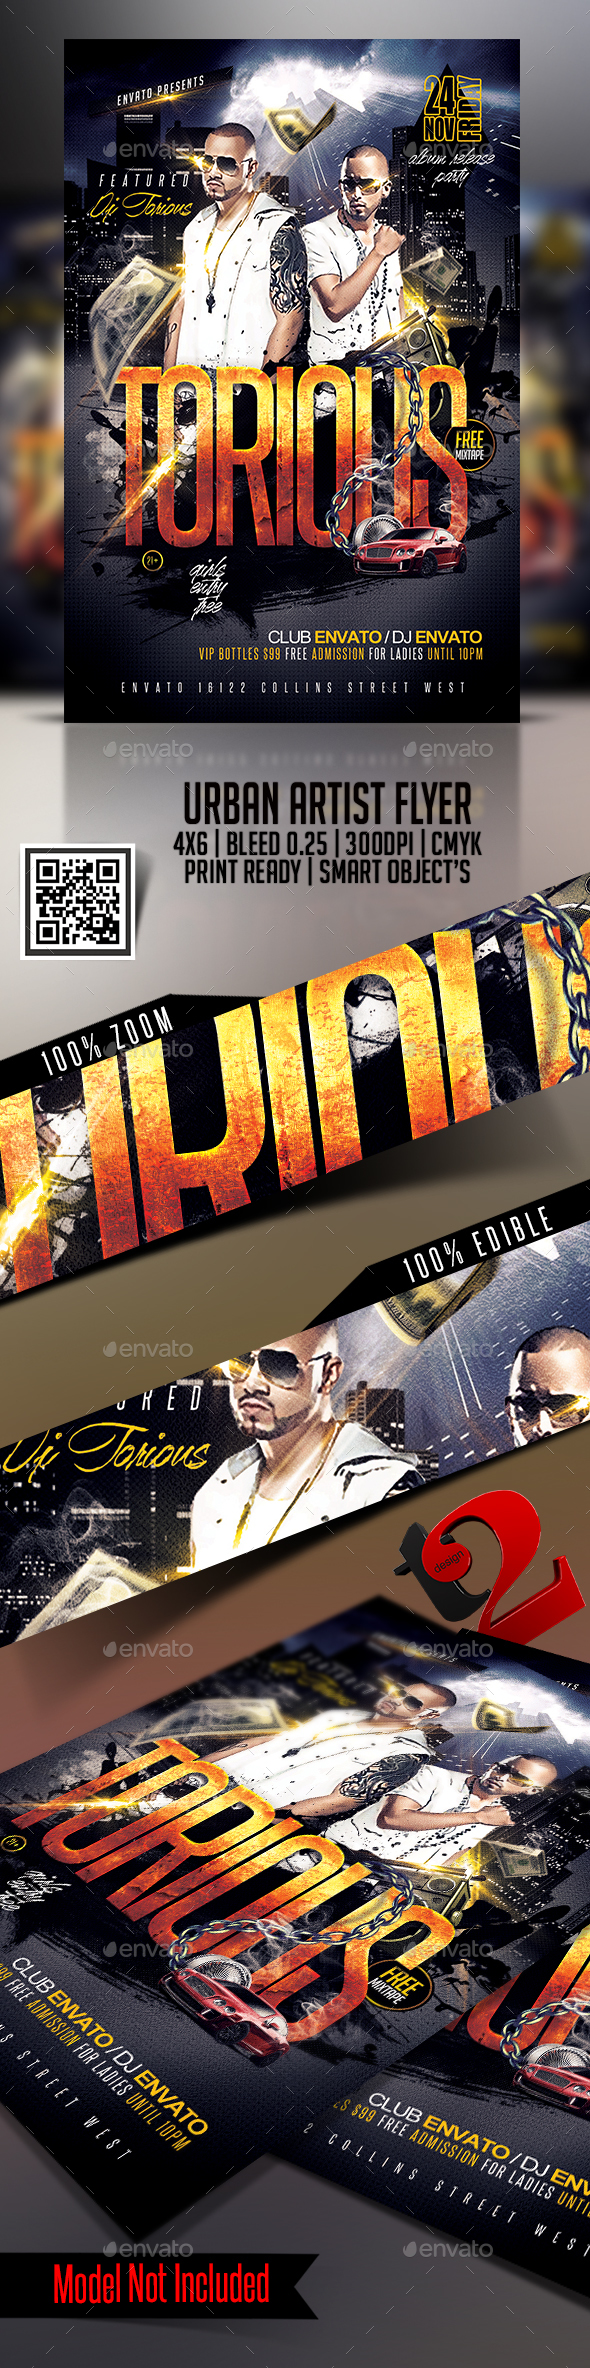 Urban Artist Flyer Template - Clubs & Parties Events